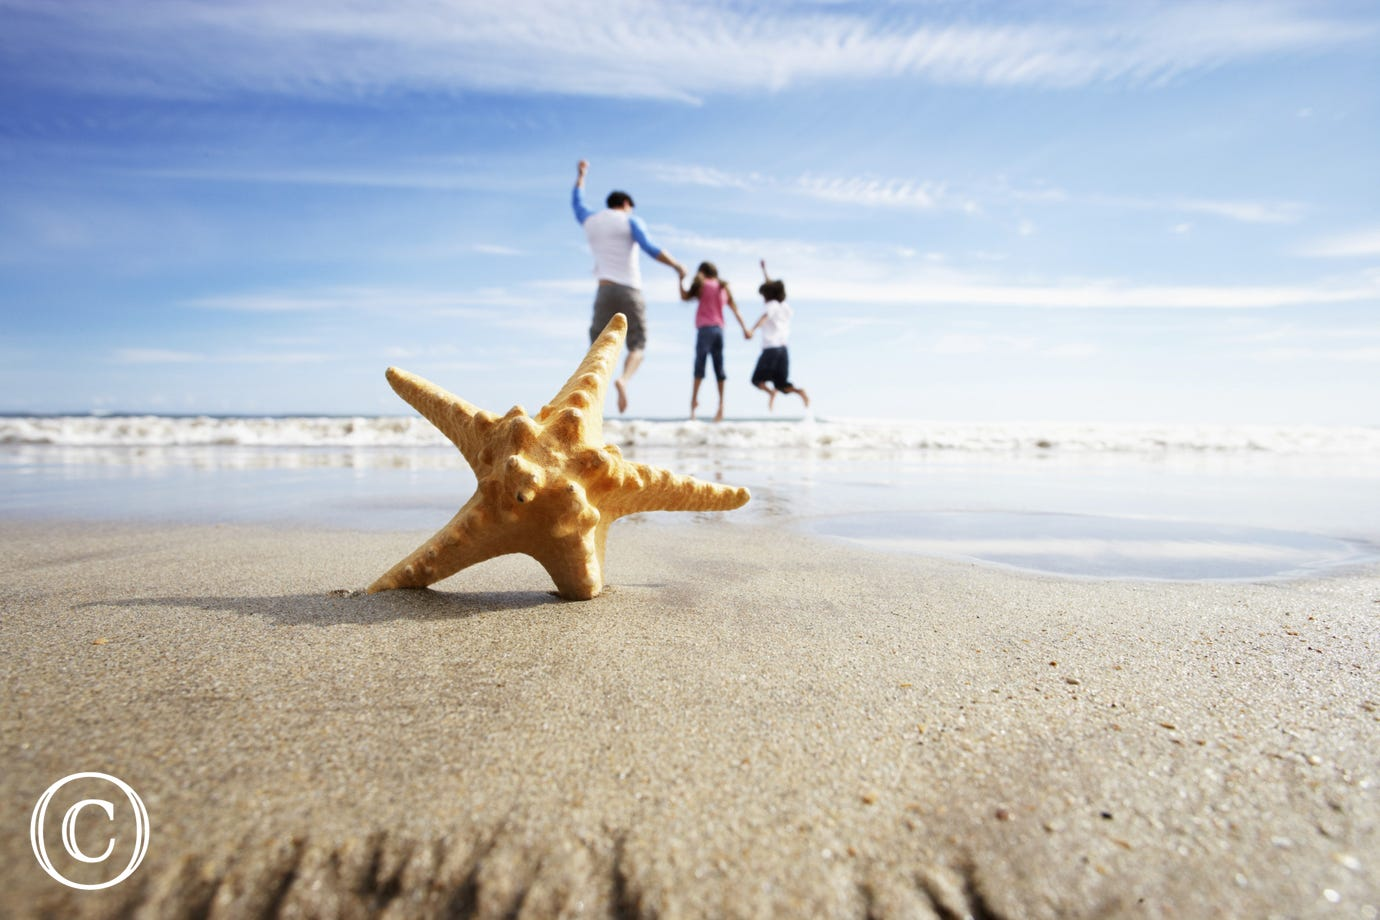 Beach with starfish and family in the background